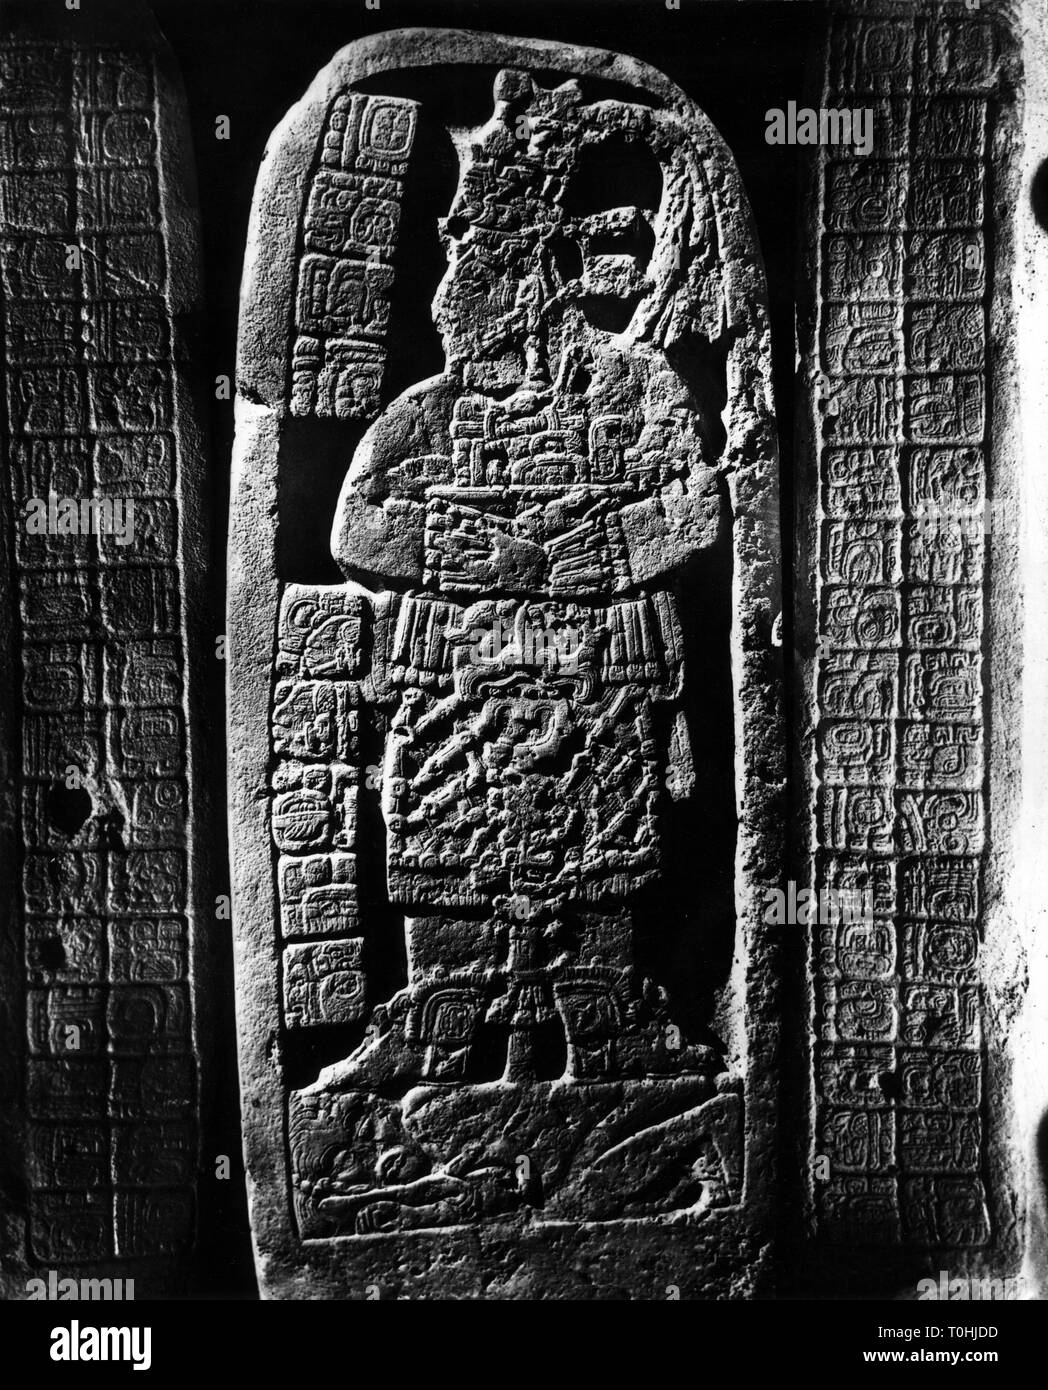 Geografia / viaggi, Guatemala, archeaology, stele Maya, Naranjo, sessanta, Additional-Rights-Clearance-Info-Not-Available Immagini Stock